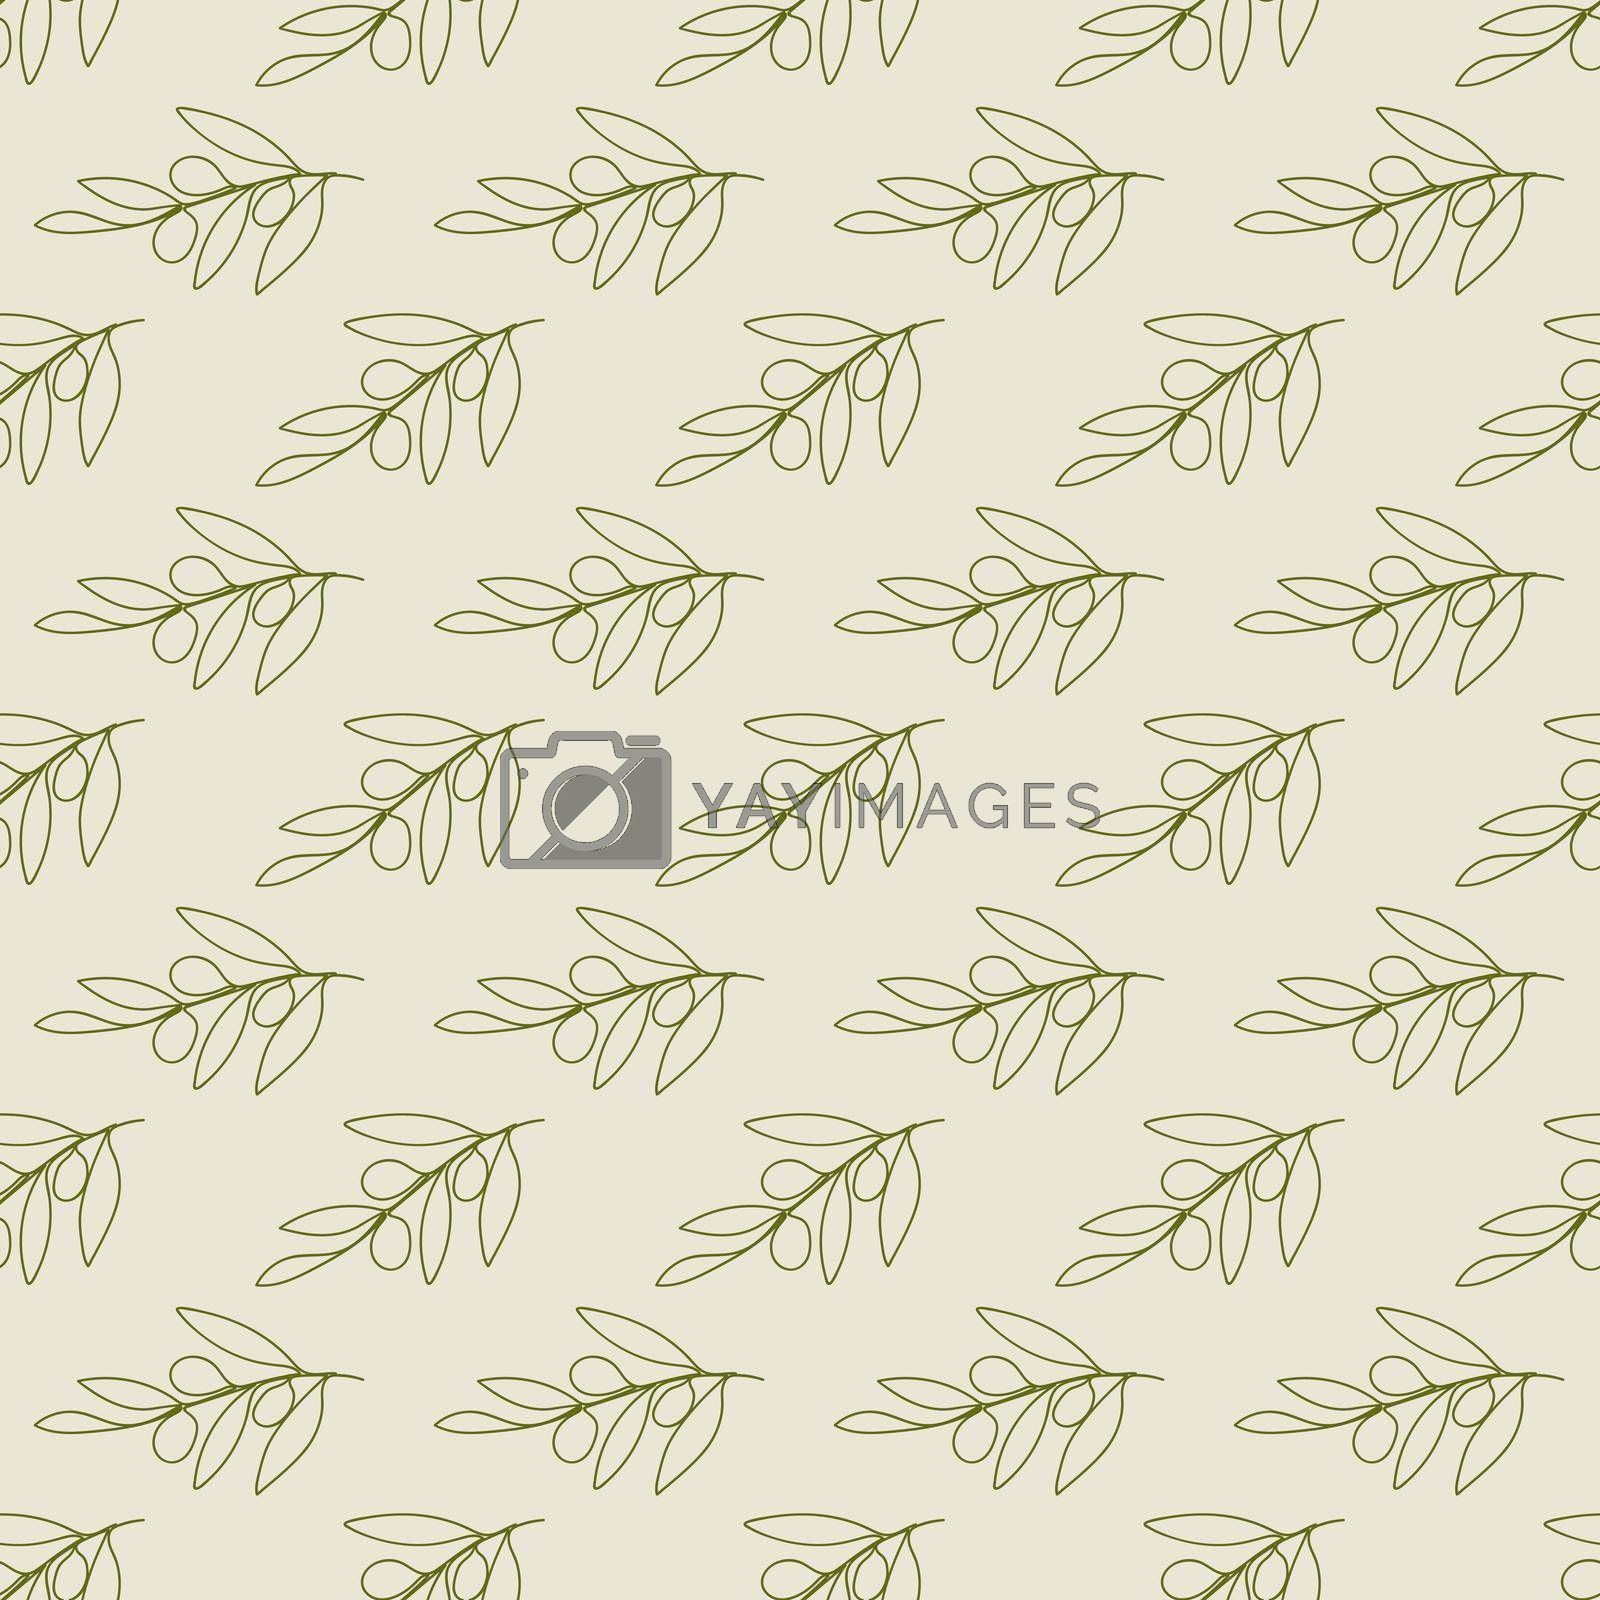 Royalty free image of Olive seamless pattern for textures, textiles, packaging and simple backgrounds by Grommik